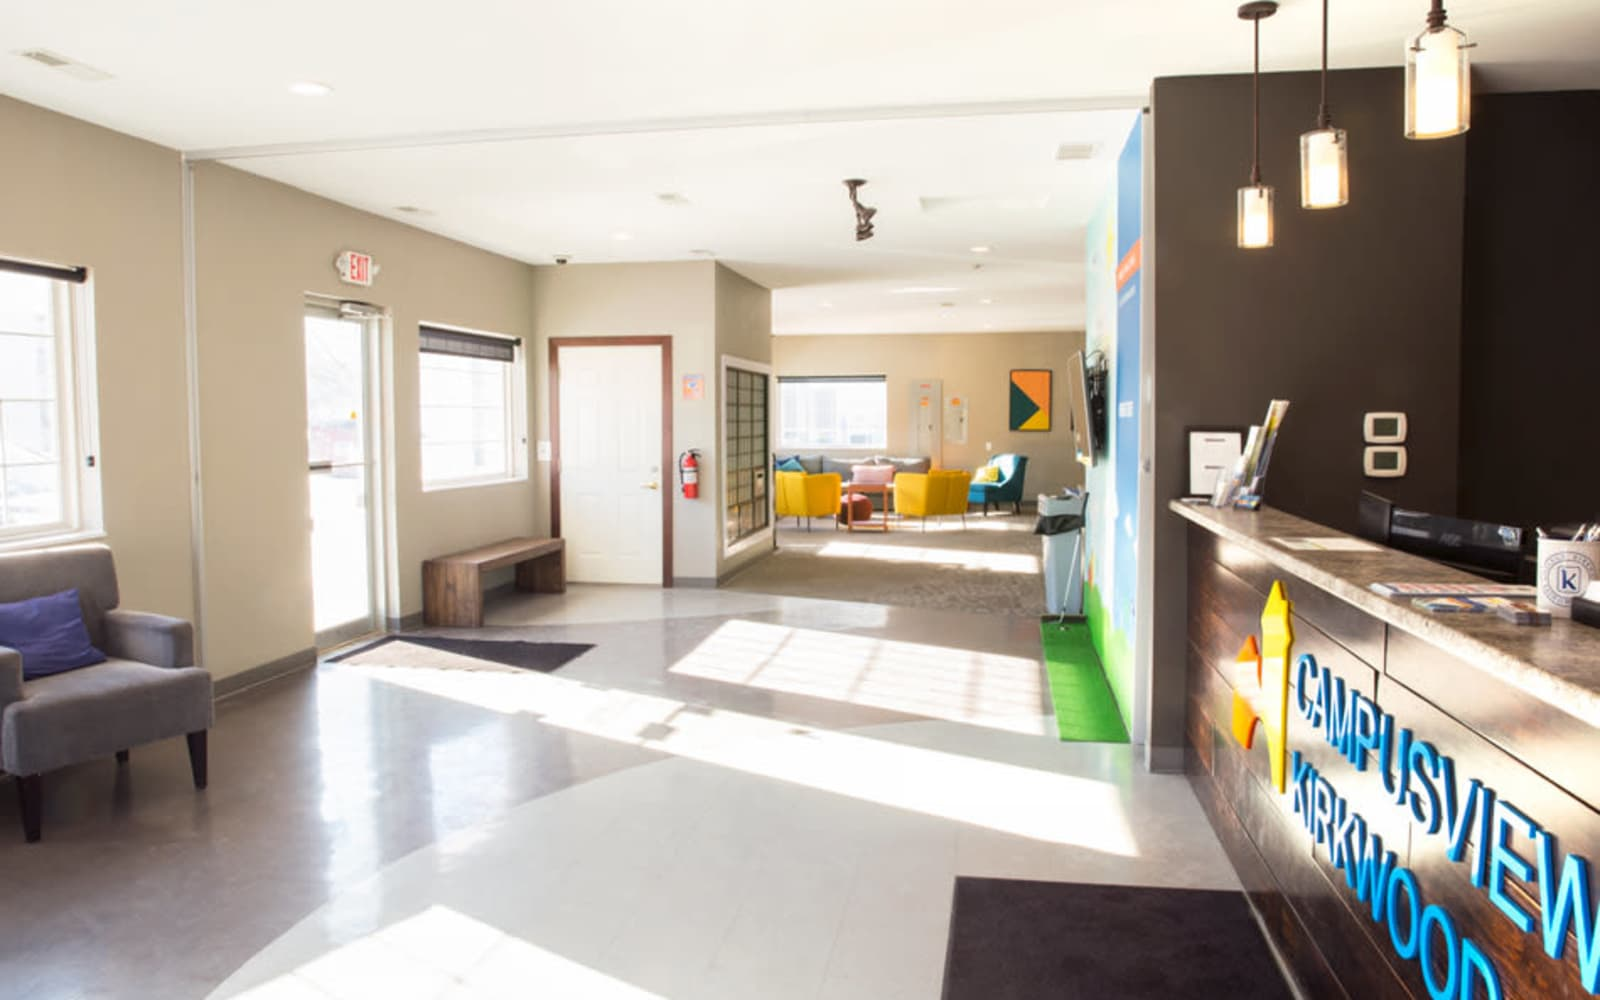 Interior of the resident clubhouse at Campus View & Kirkwood Court in Cedar Rapids, Iowa